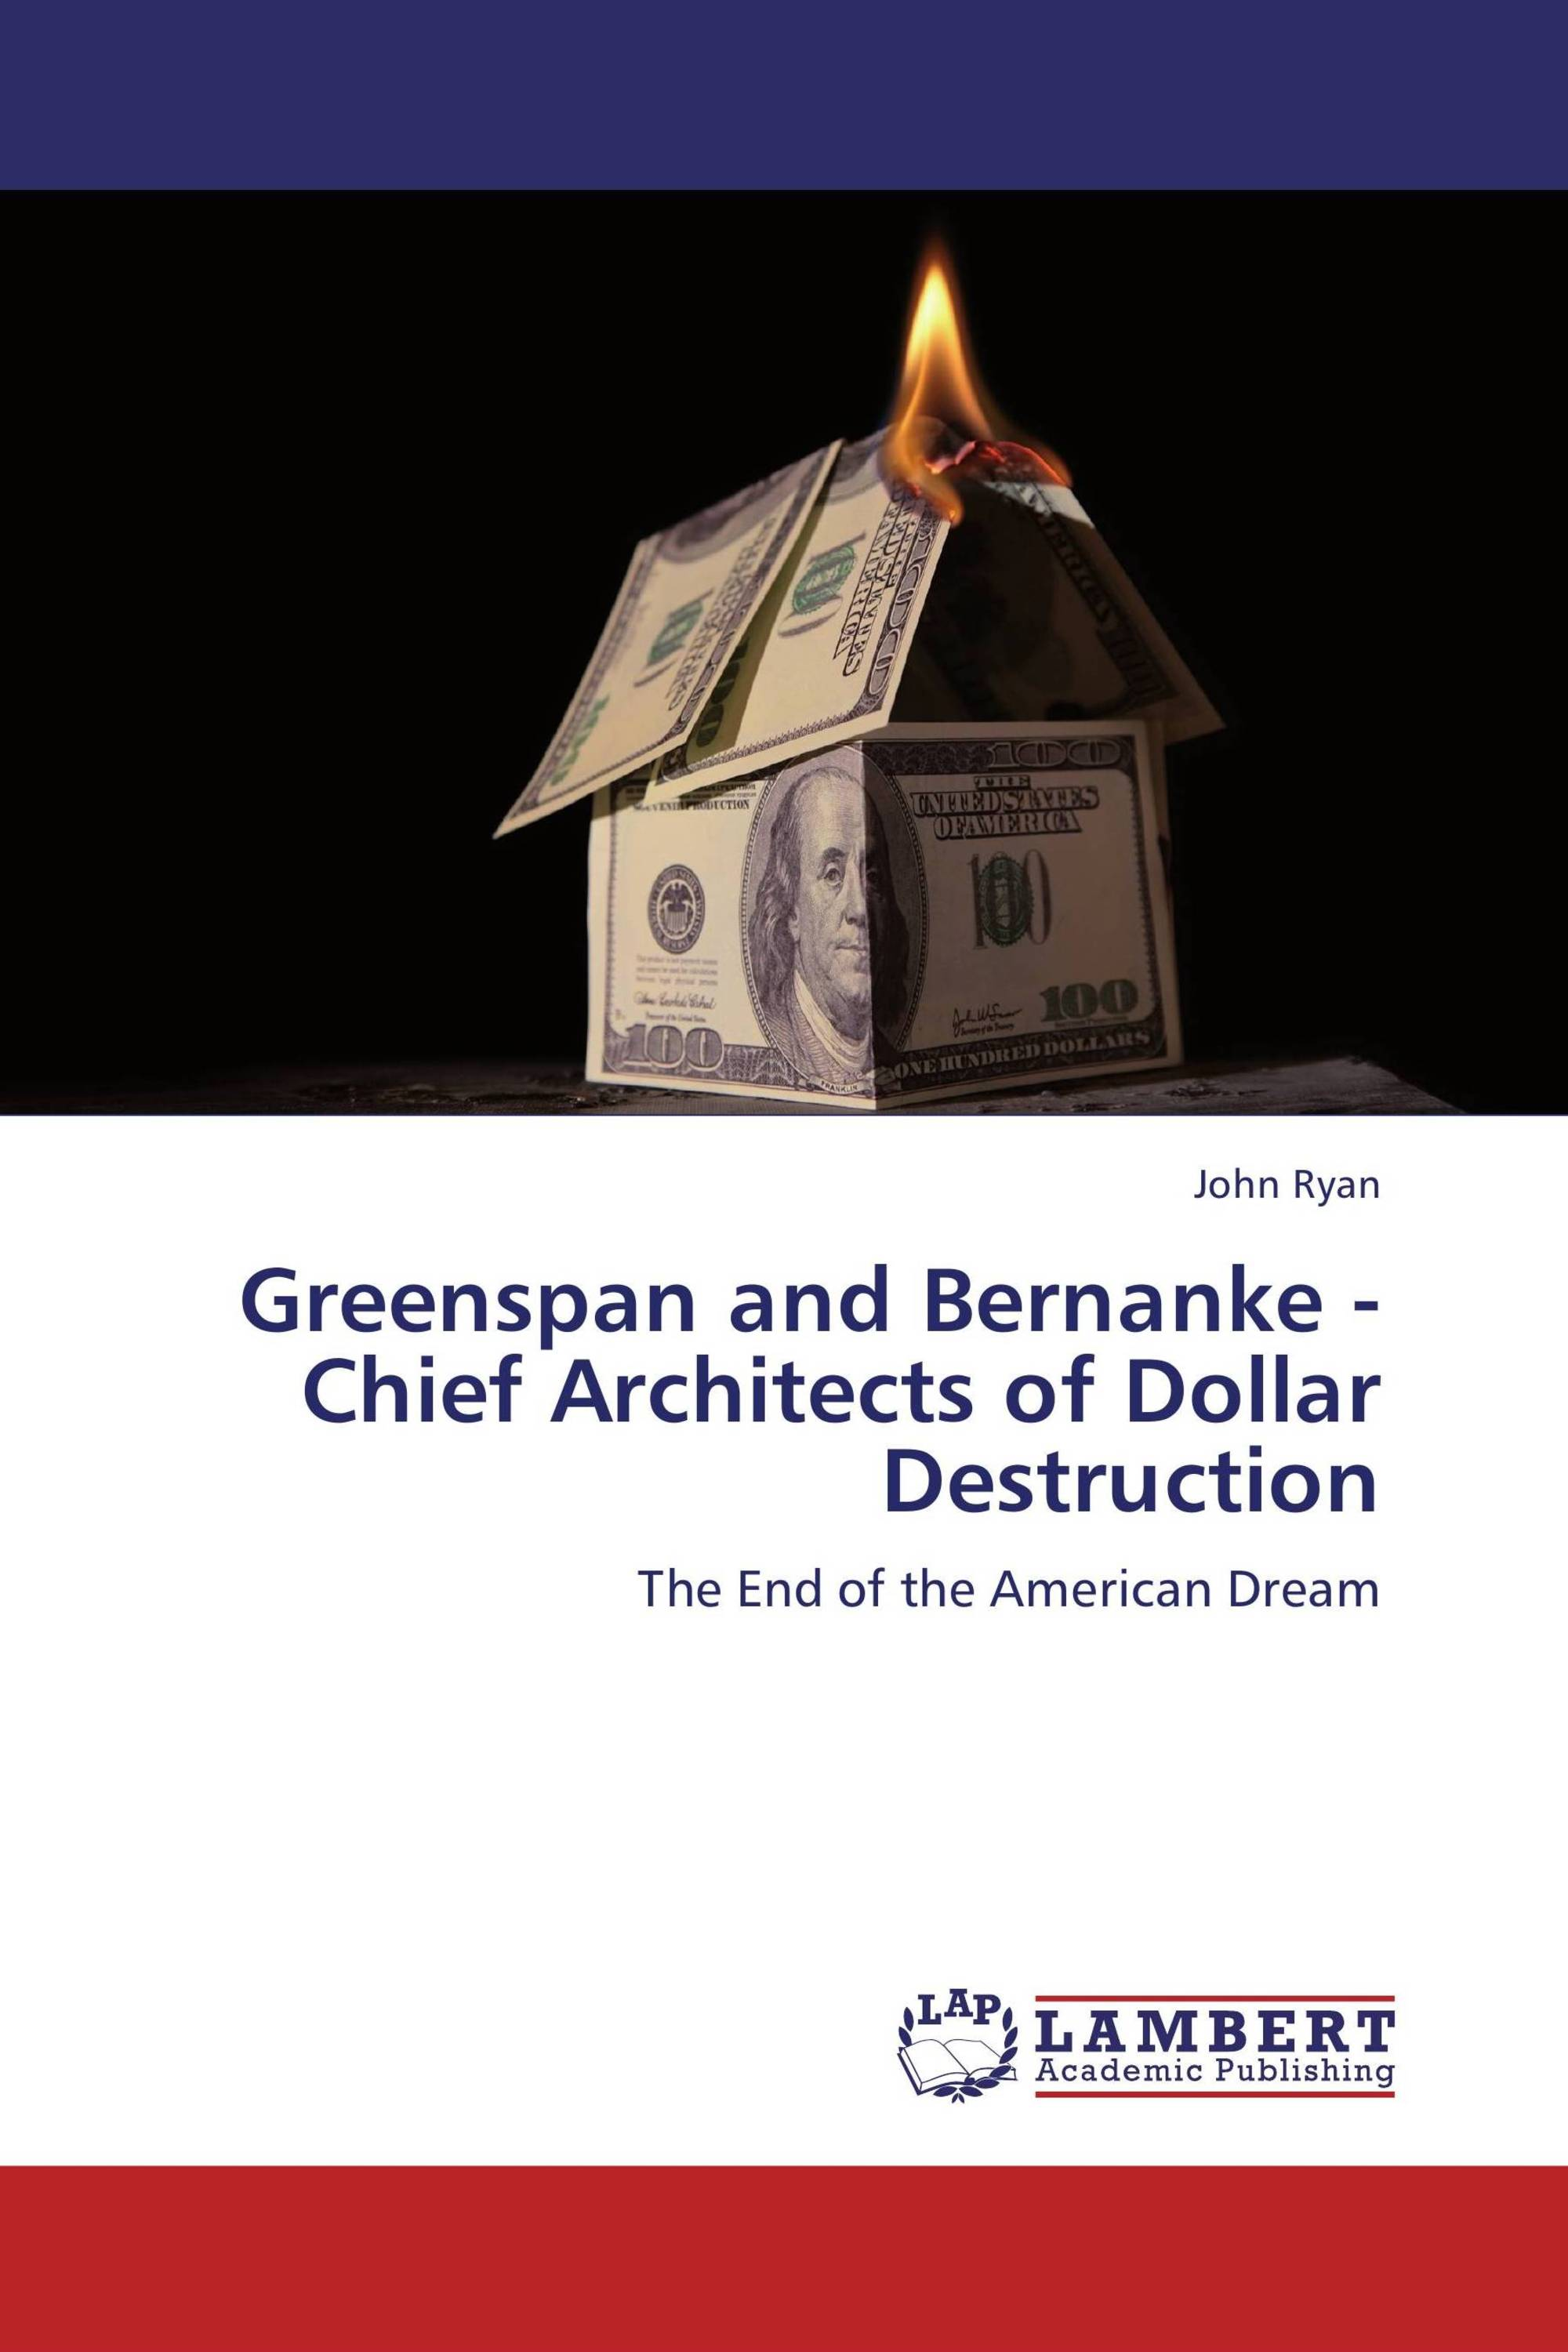 Greenspan and Bernanke - Chief Architects of Dollar Destruction